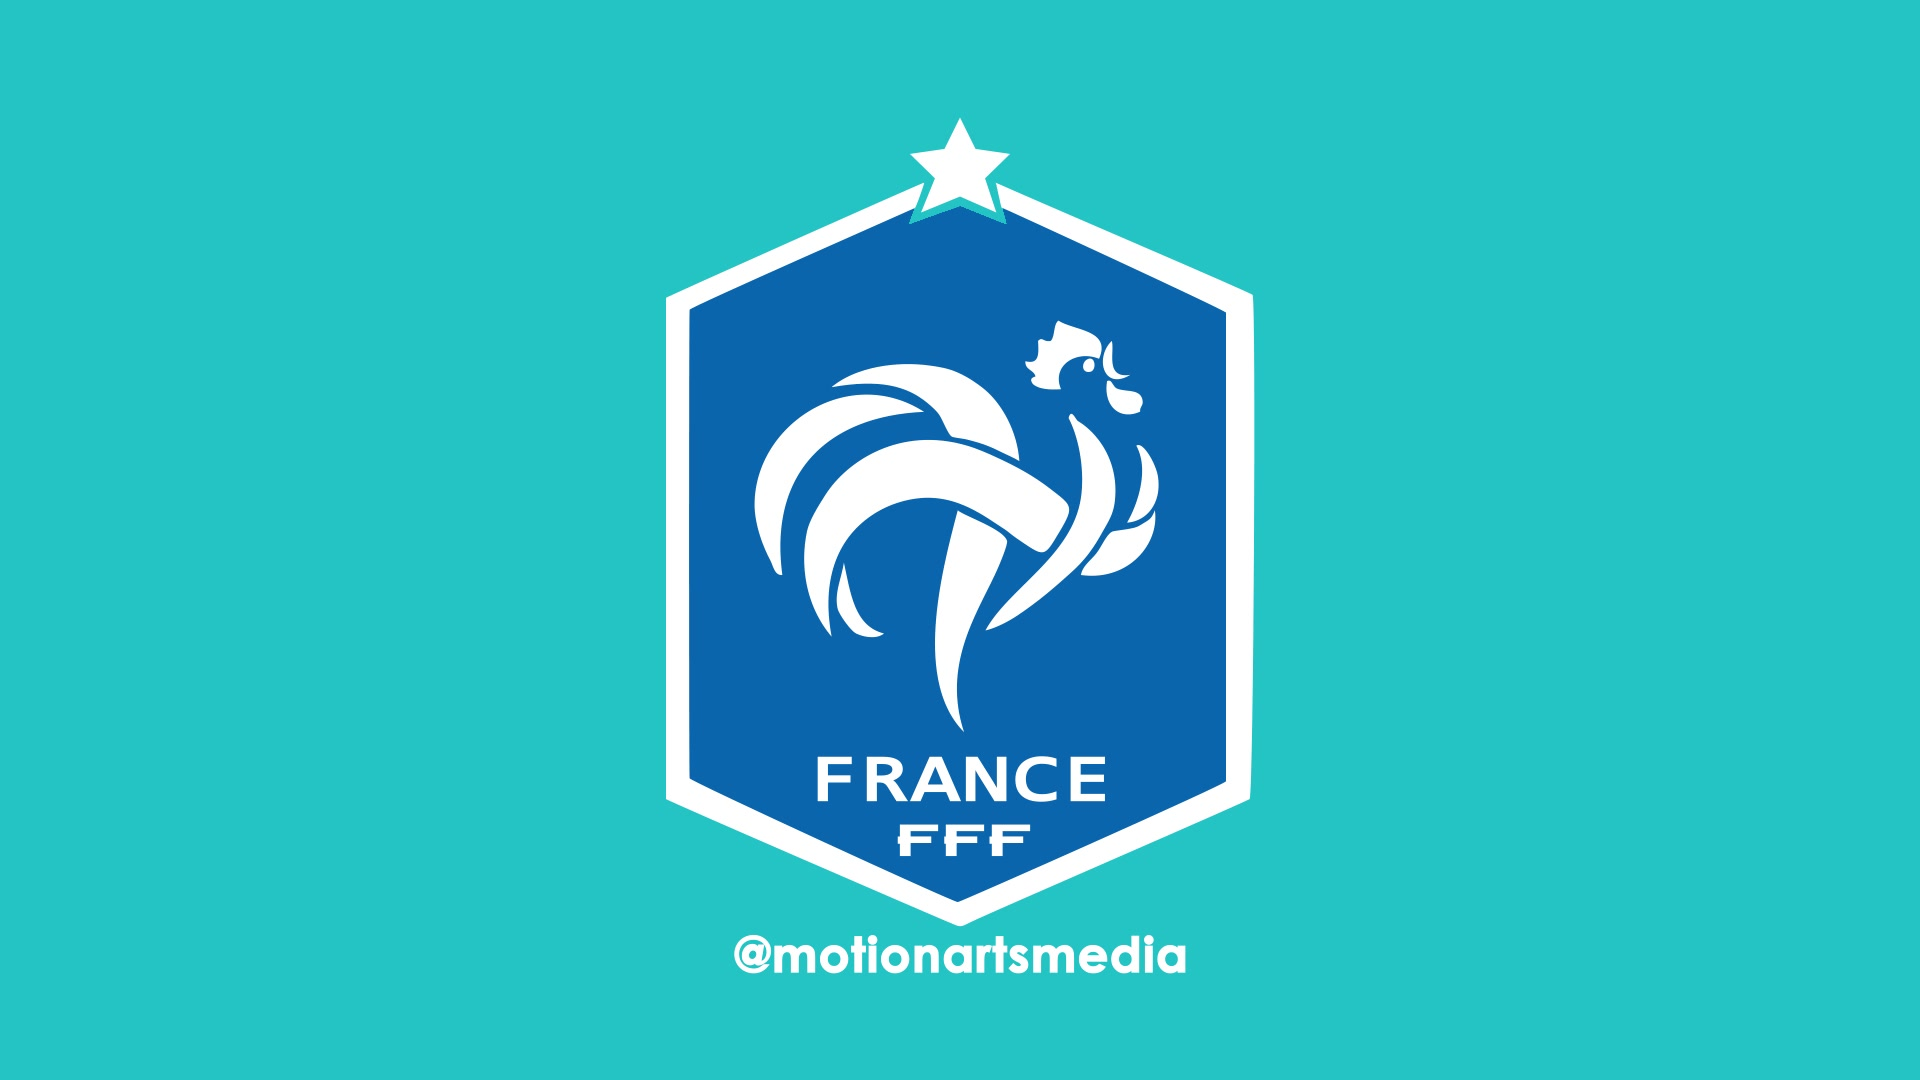 France Football Team Image 04